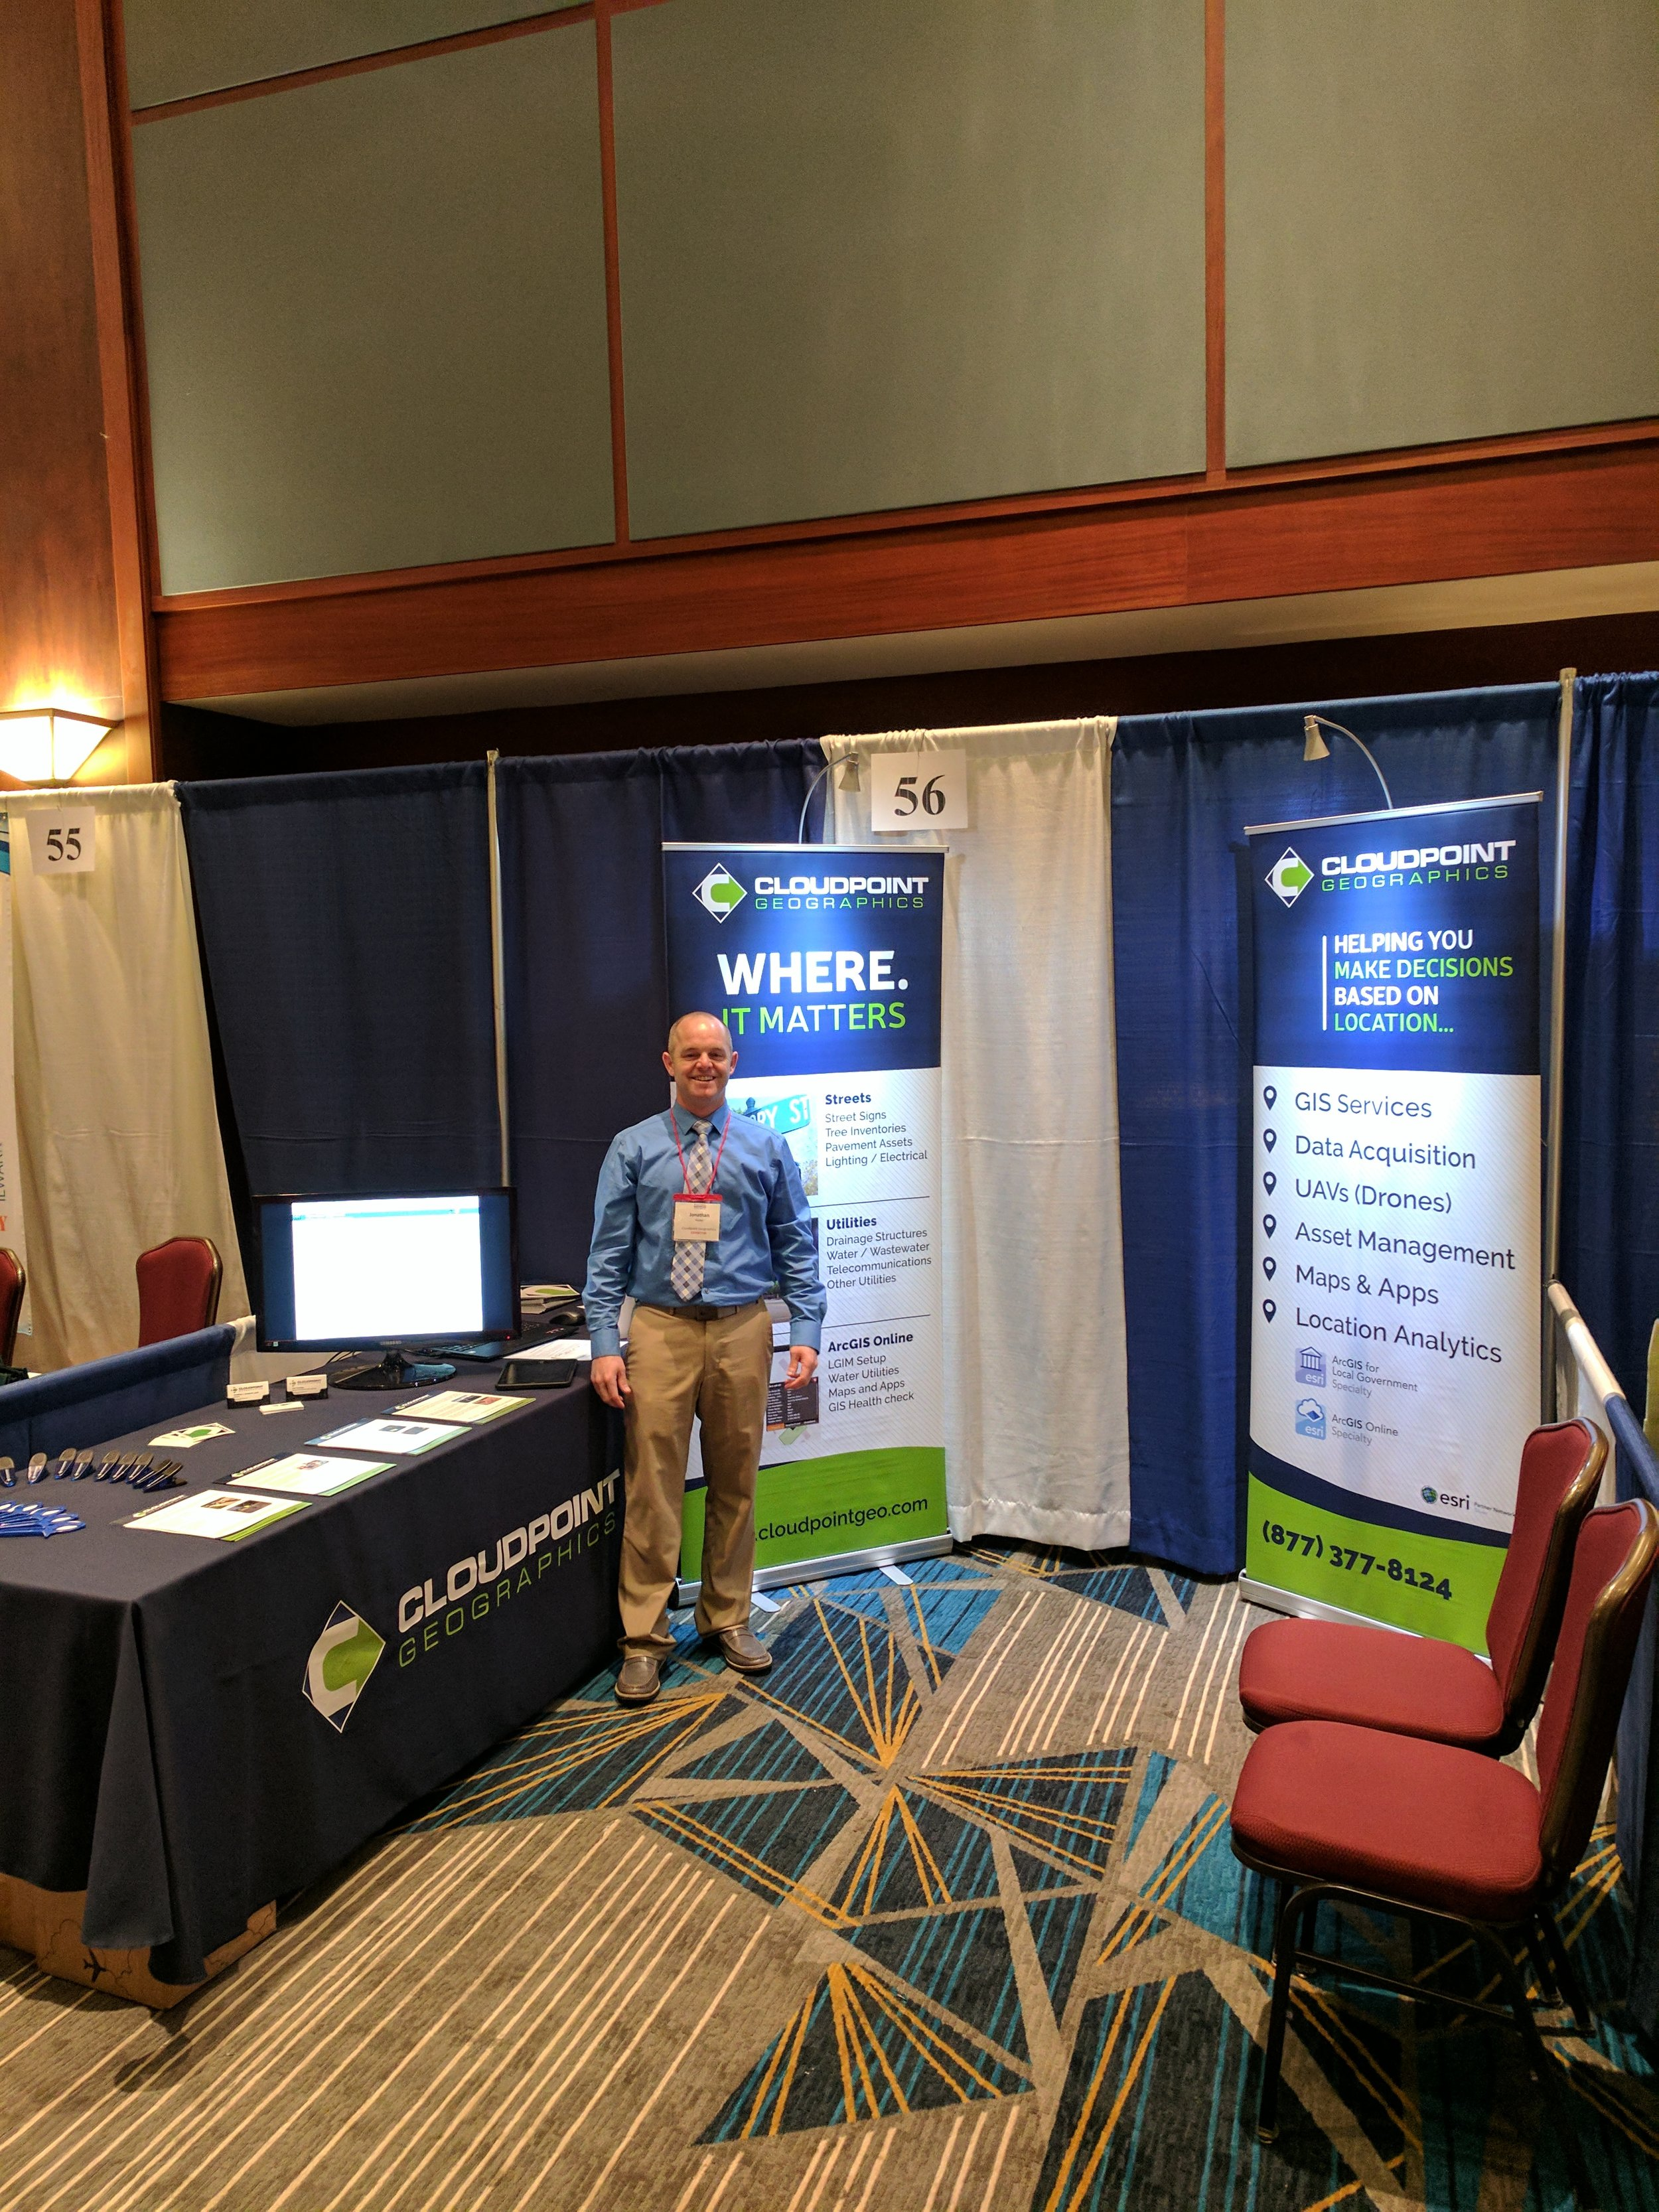 Jon ready to welcome everyone to the Cloudpoint booth at Watercon 2017!